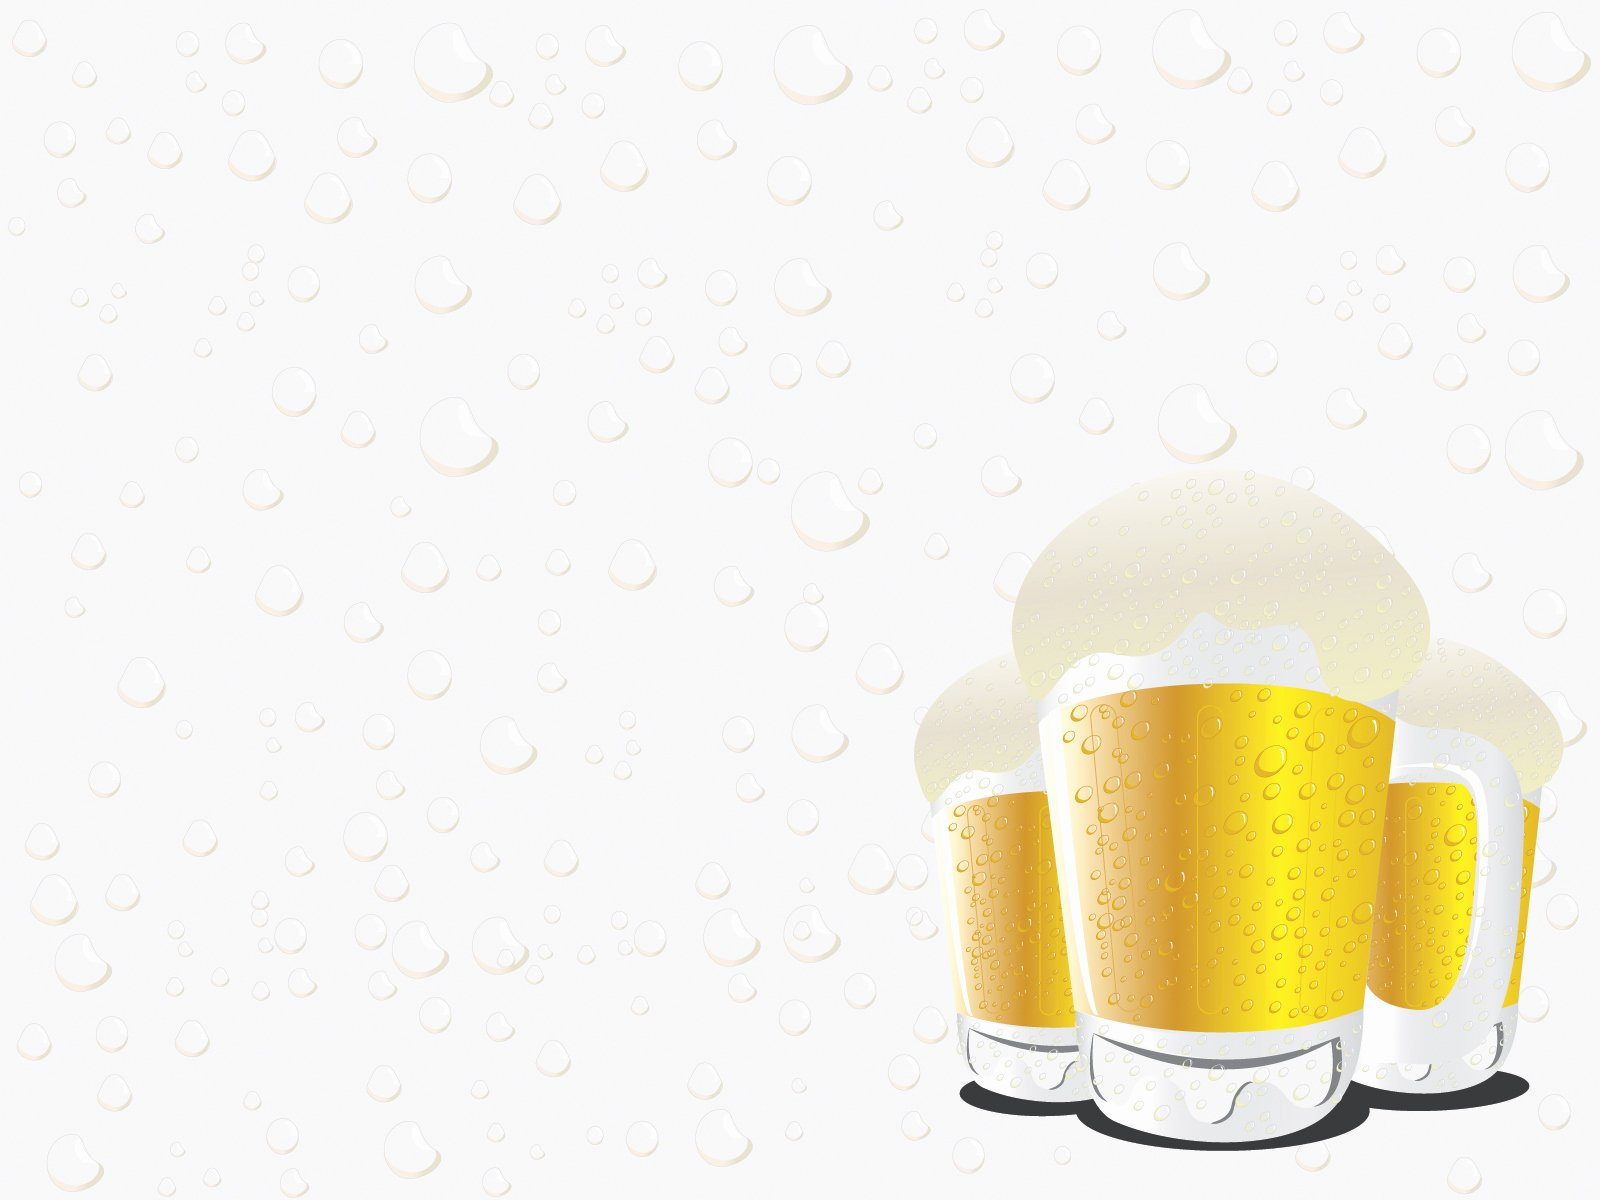 Beer Can Design Template Awesome Beer Glasses Powerpoint Templates Food & Drink Yellow